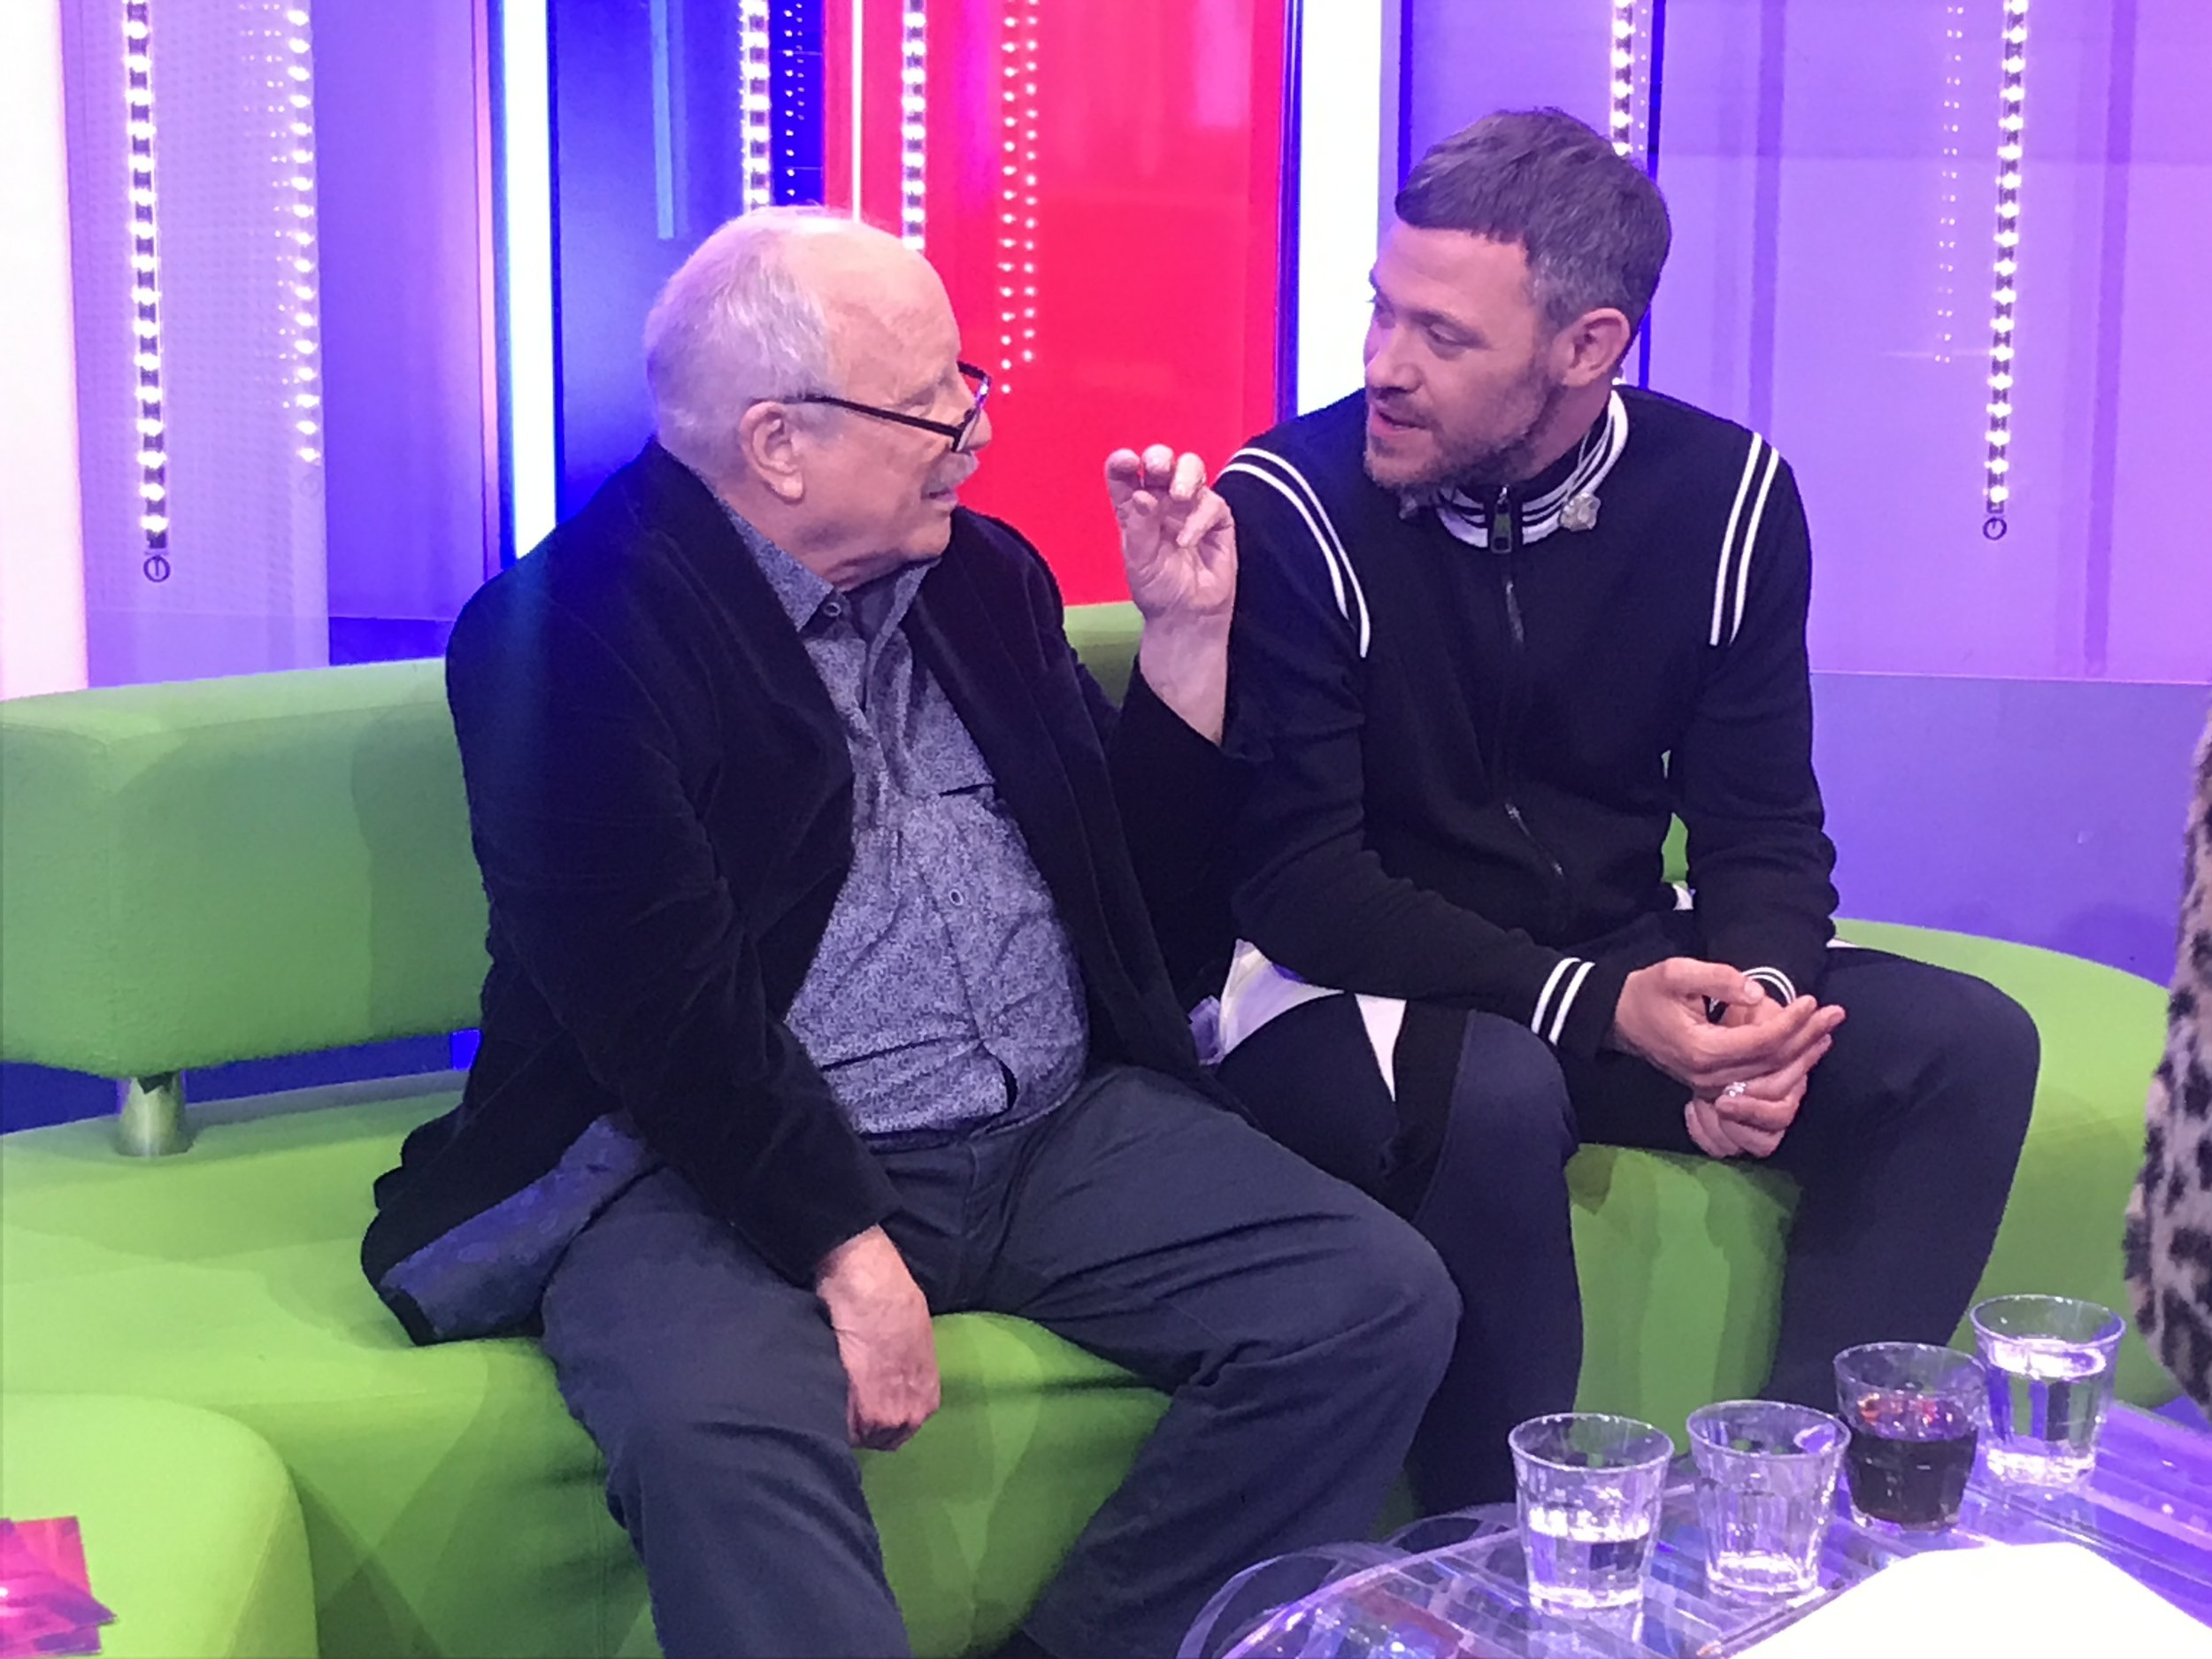 Richard chats with One Show guest Will Young after the show